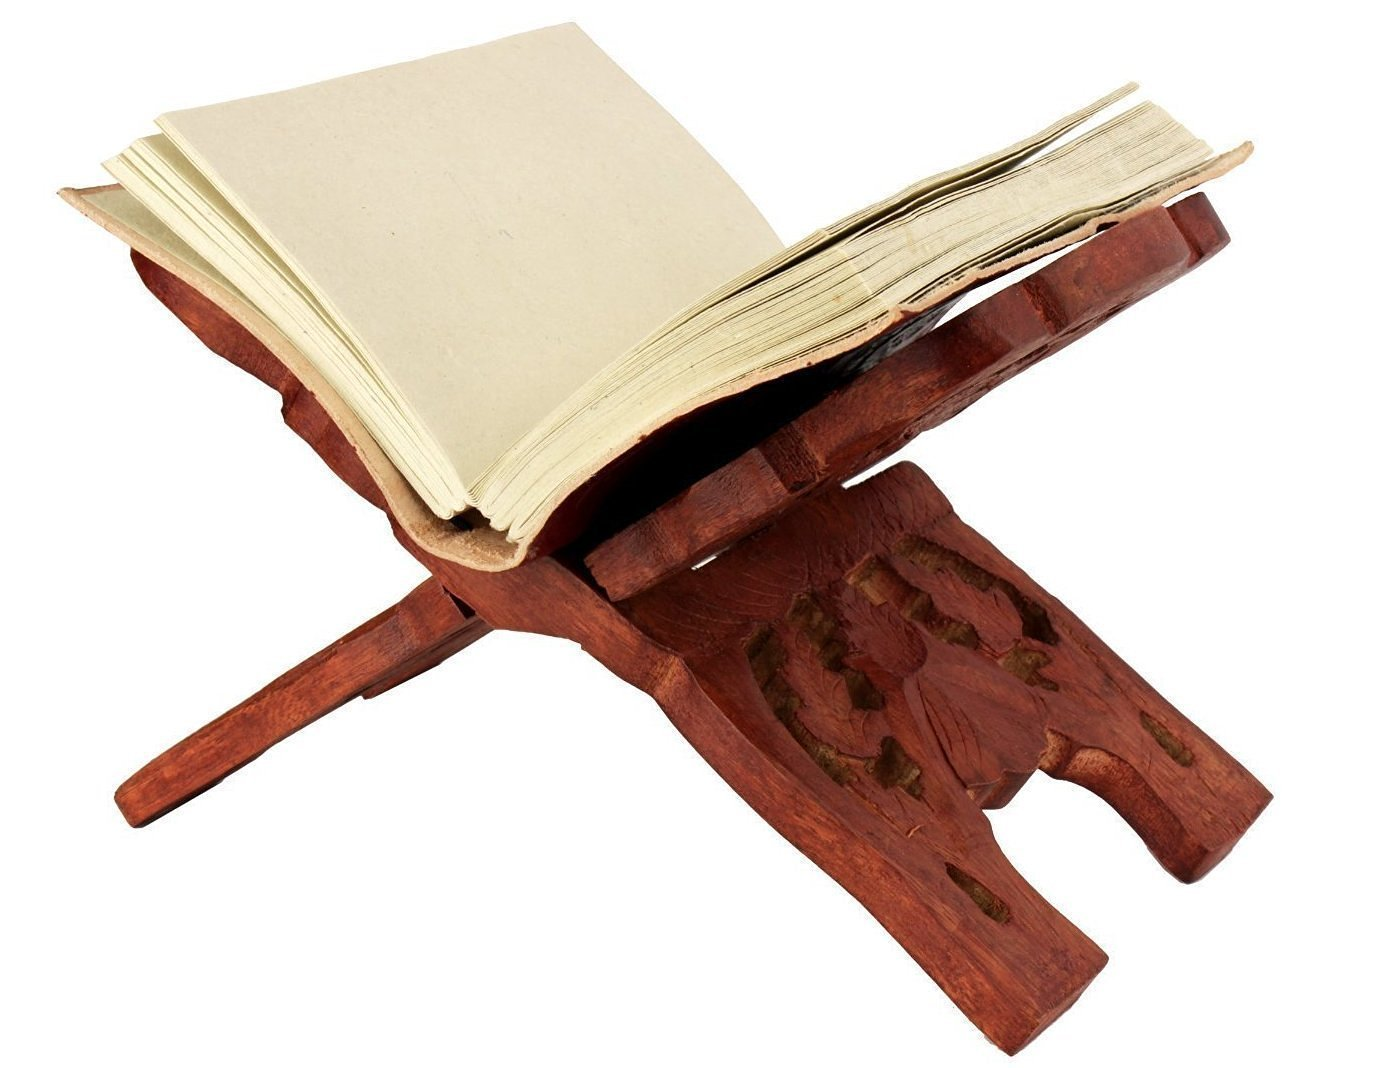 Dios Wooden Book Reading Stand - Size 13 inch x 6.5 inch - Hand Carved Holy Book Holder Folding Stand / Rihal/Rahel for Quran / Bible / Geeta / Guru Granth Sahib / Tanakh / Torah - Handmade by By Dios®